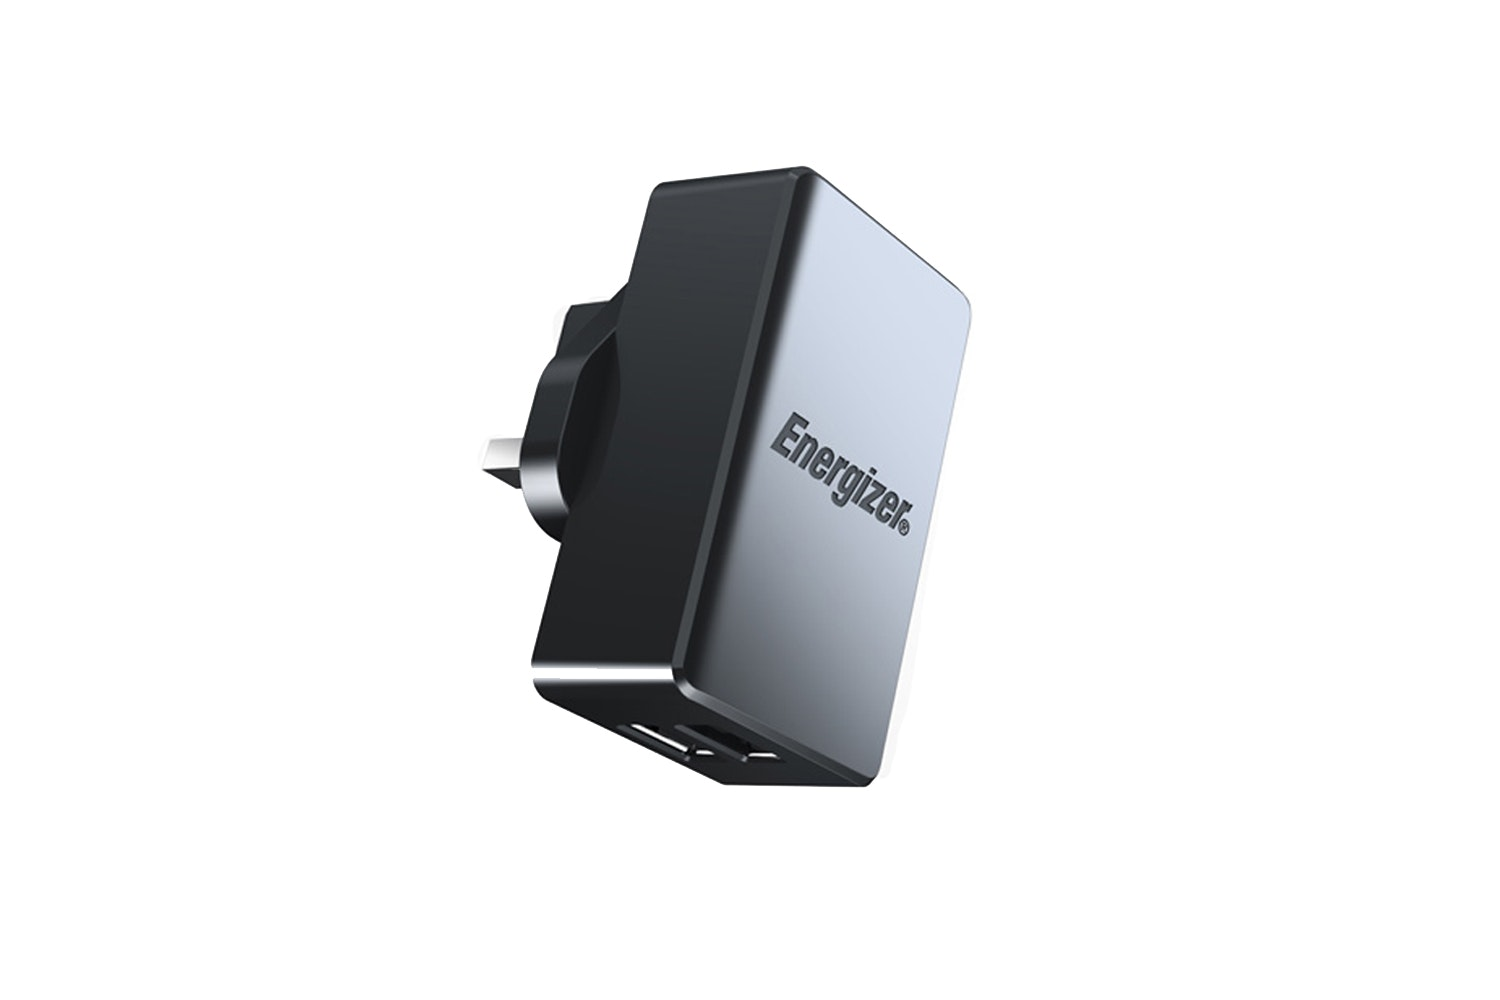 Energizer Ultimate Dual USB 4.8A Wall Charger | Black